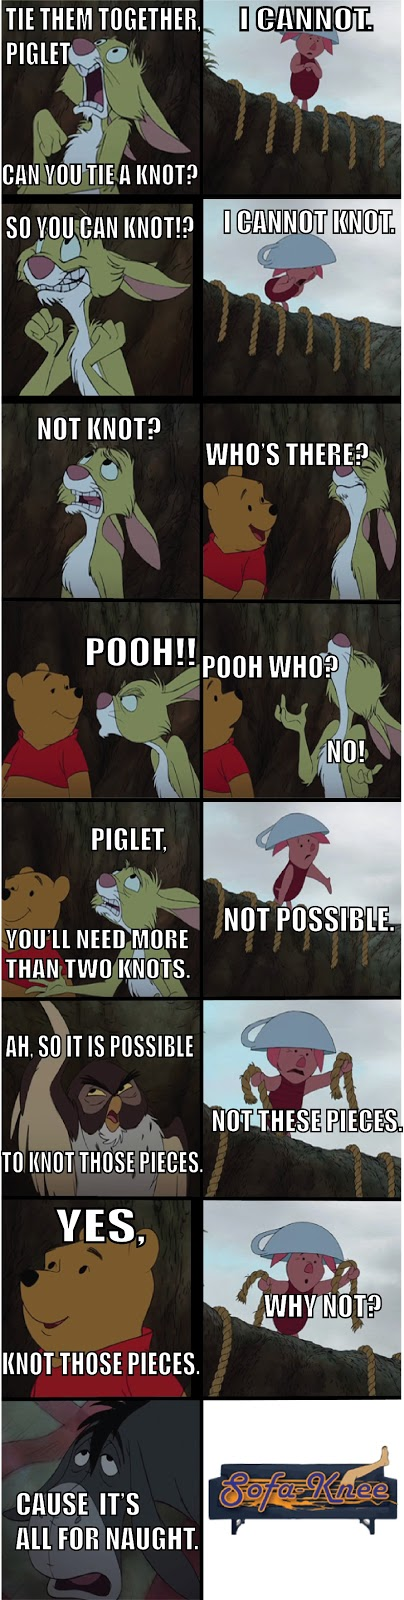 Winnie the pooh knot puns image